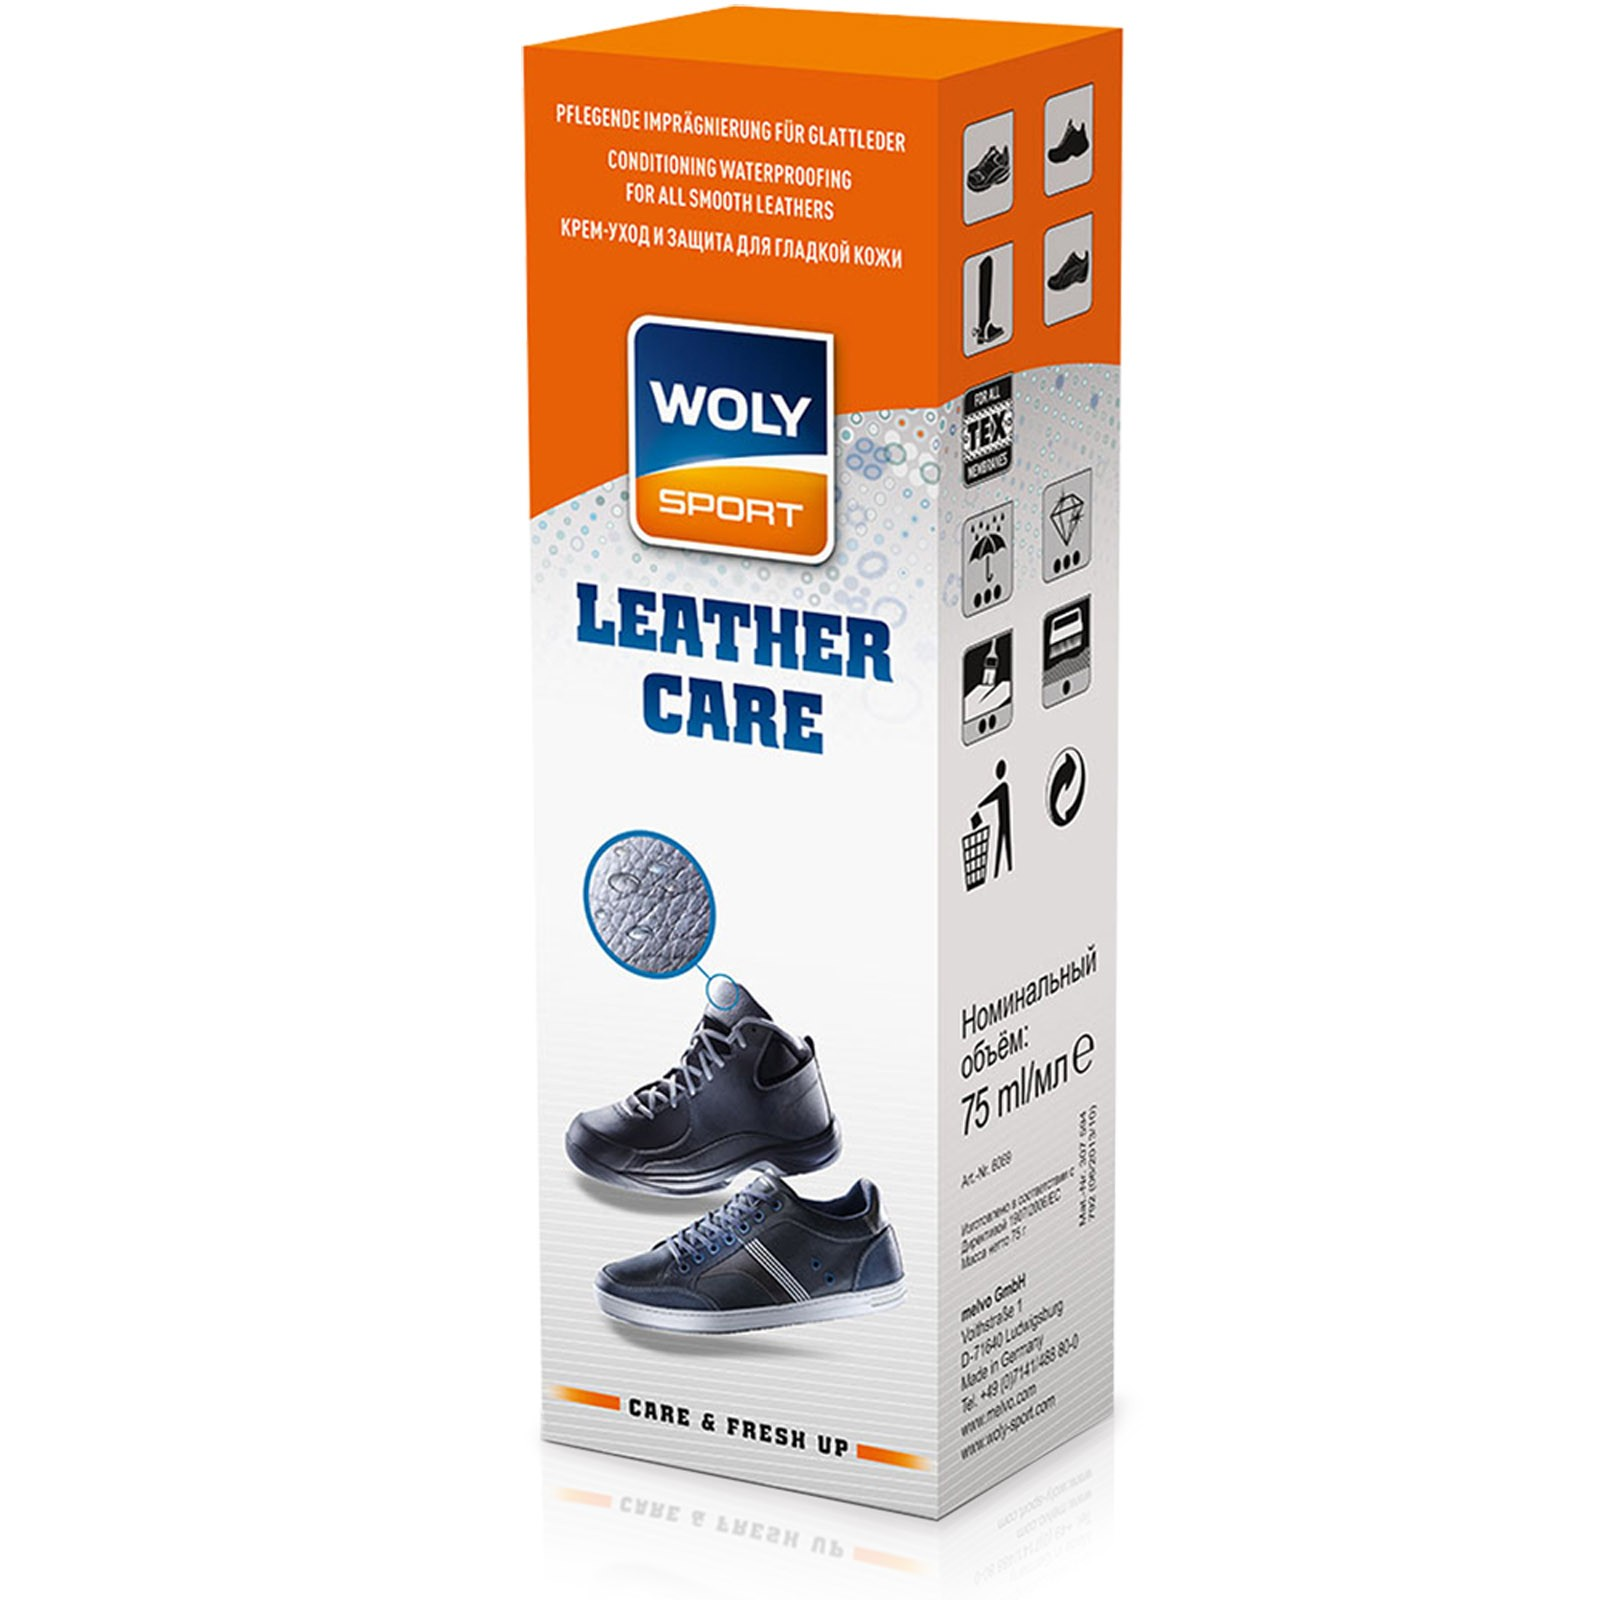 Woly Sport Leather Care Black